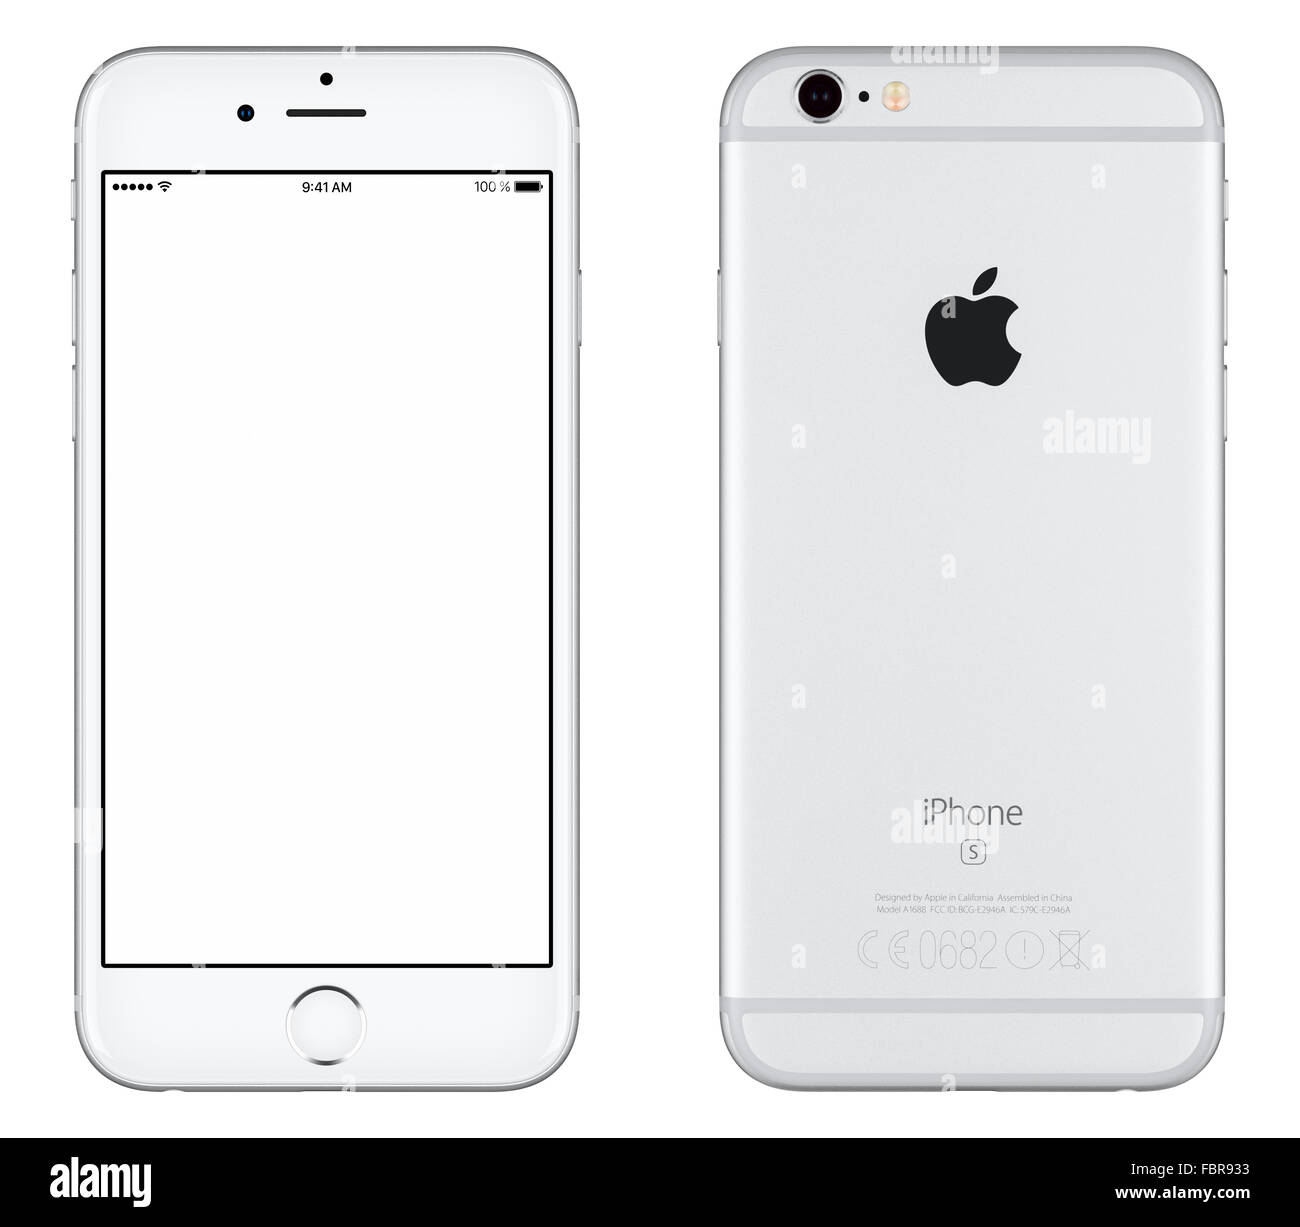 Varna, Bulgaria - October 24, 2015: Front view of Silver Apple iPhone 6S mockup with white screen and back side - Stock Image